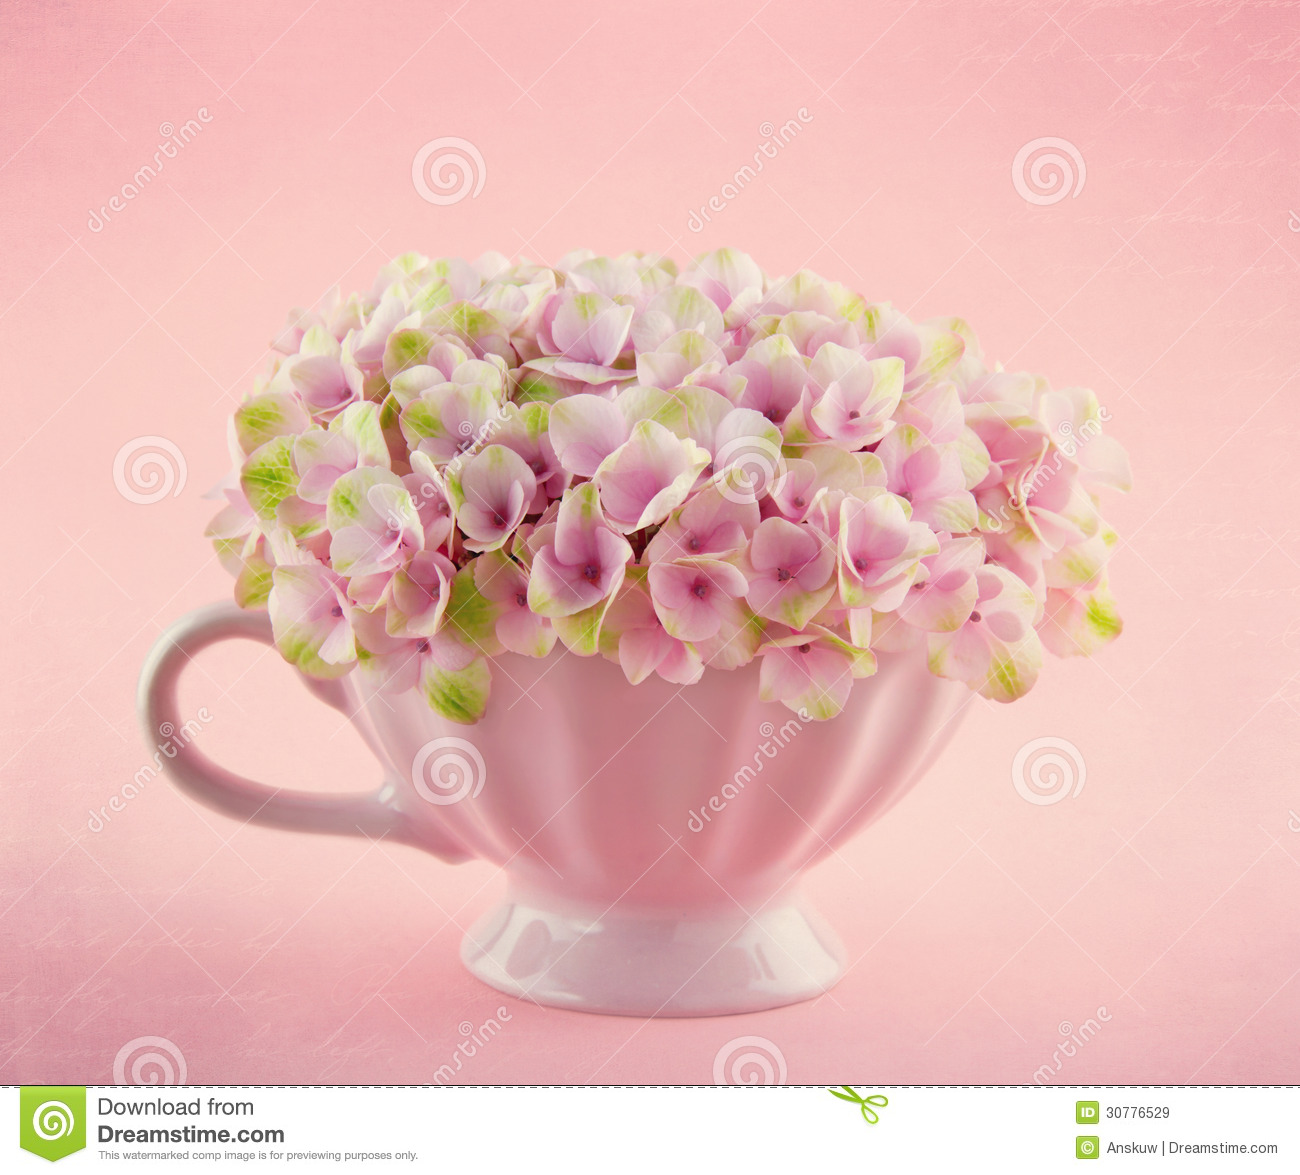 Romantic Pink Hydrangea Flowers In A Mug Stock Image Of Vintage Story Flower Shabby Rose 3